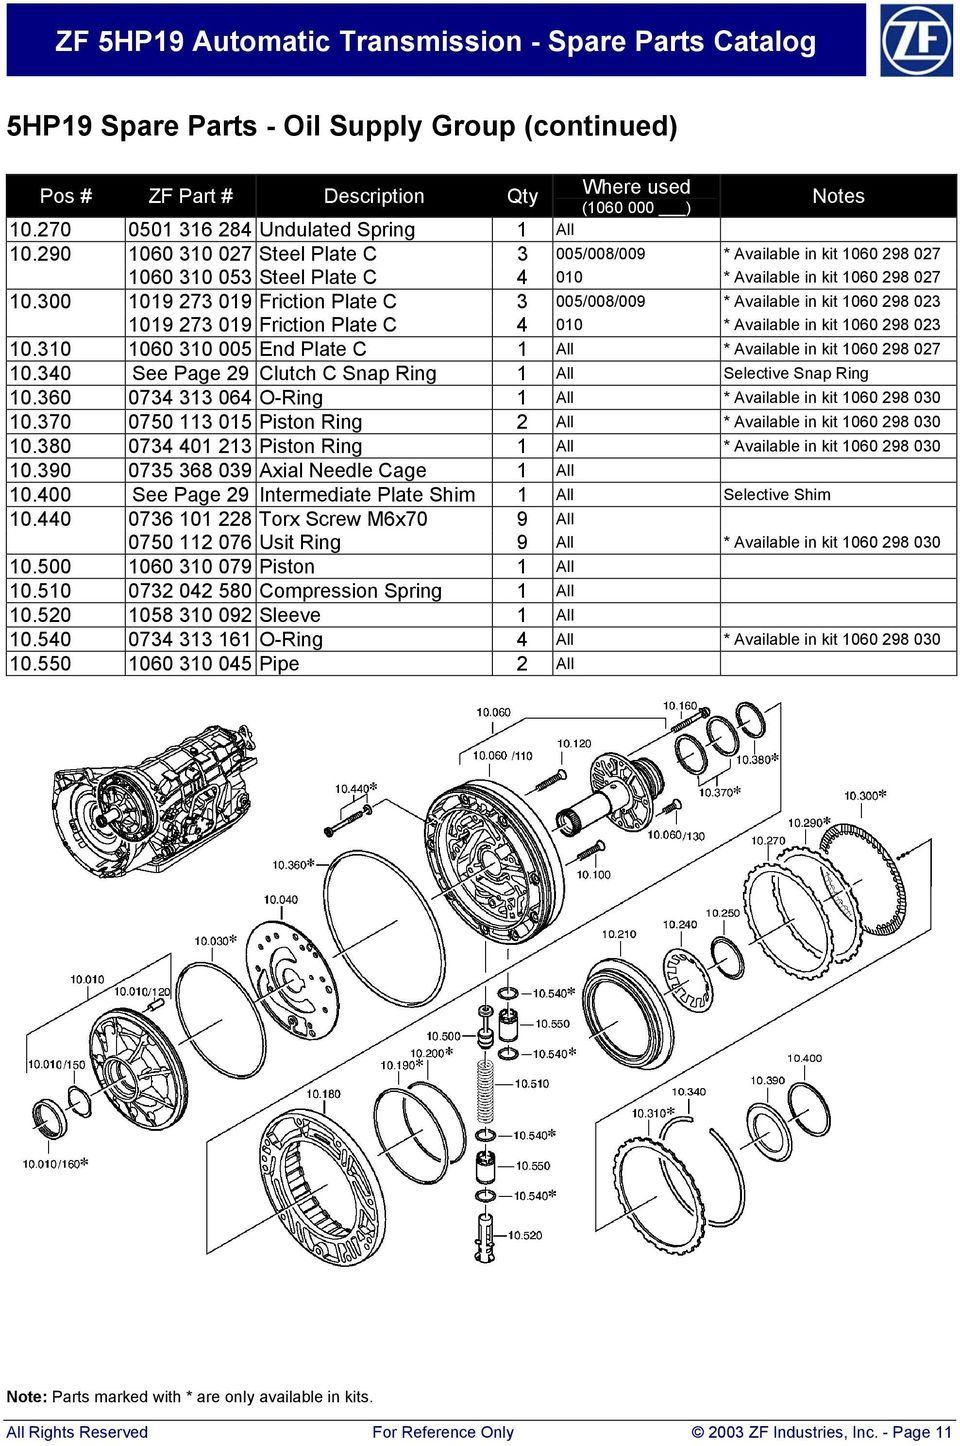 ZF 5HP19  Automatic Transmission Spare Parts Catalog - PDF